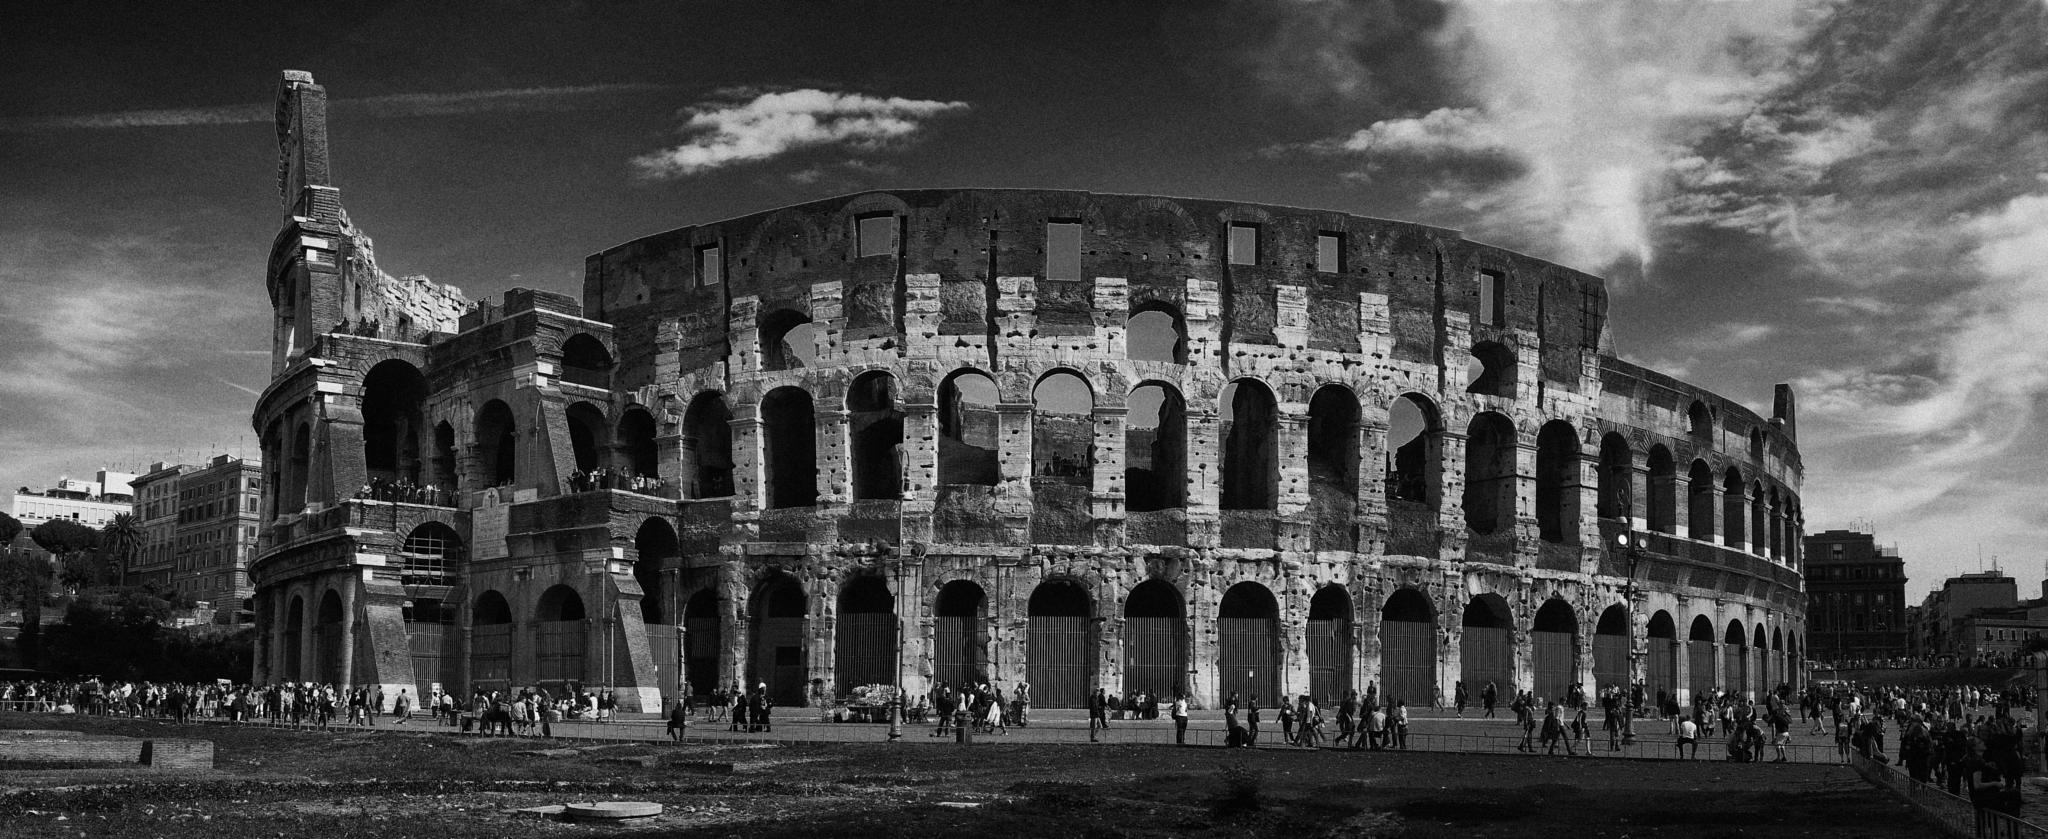 Il Colosseo by leicajerome